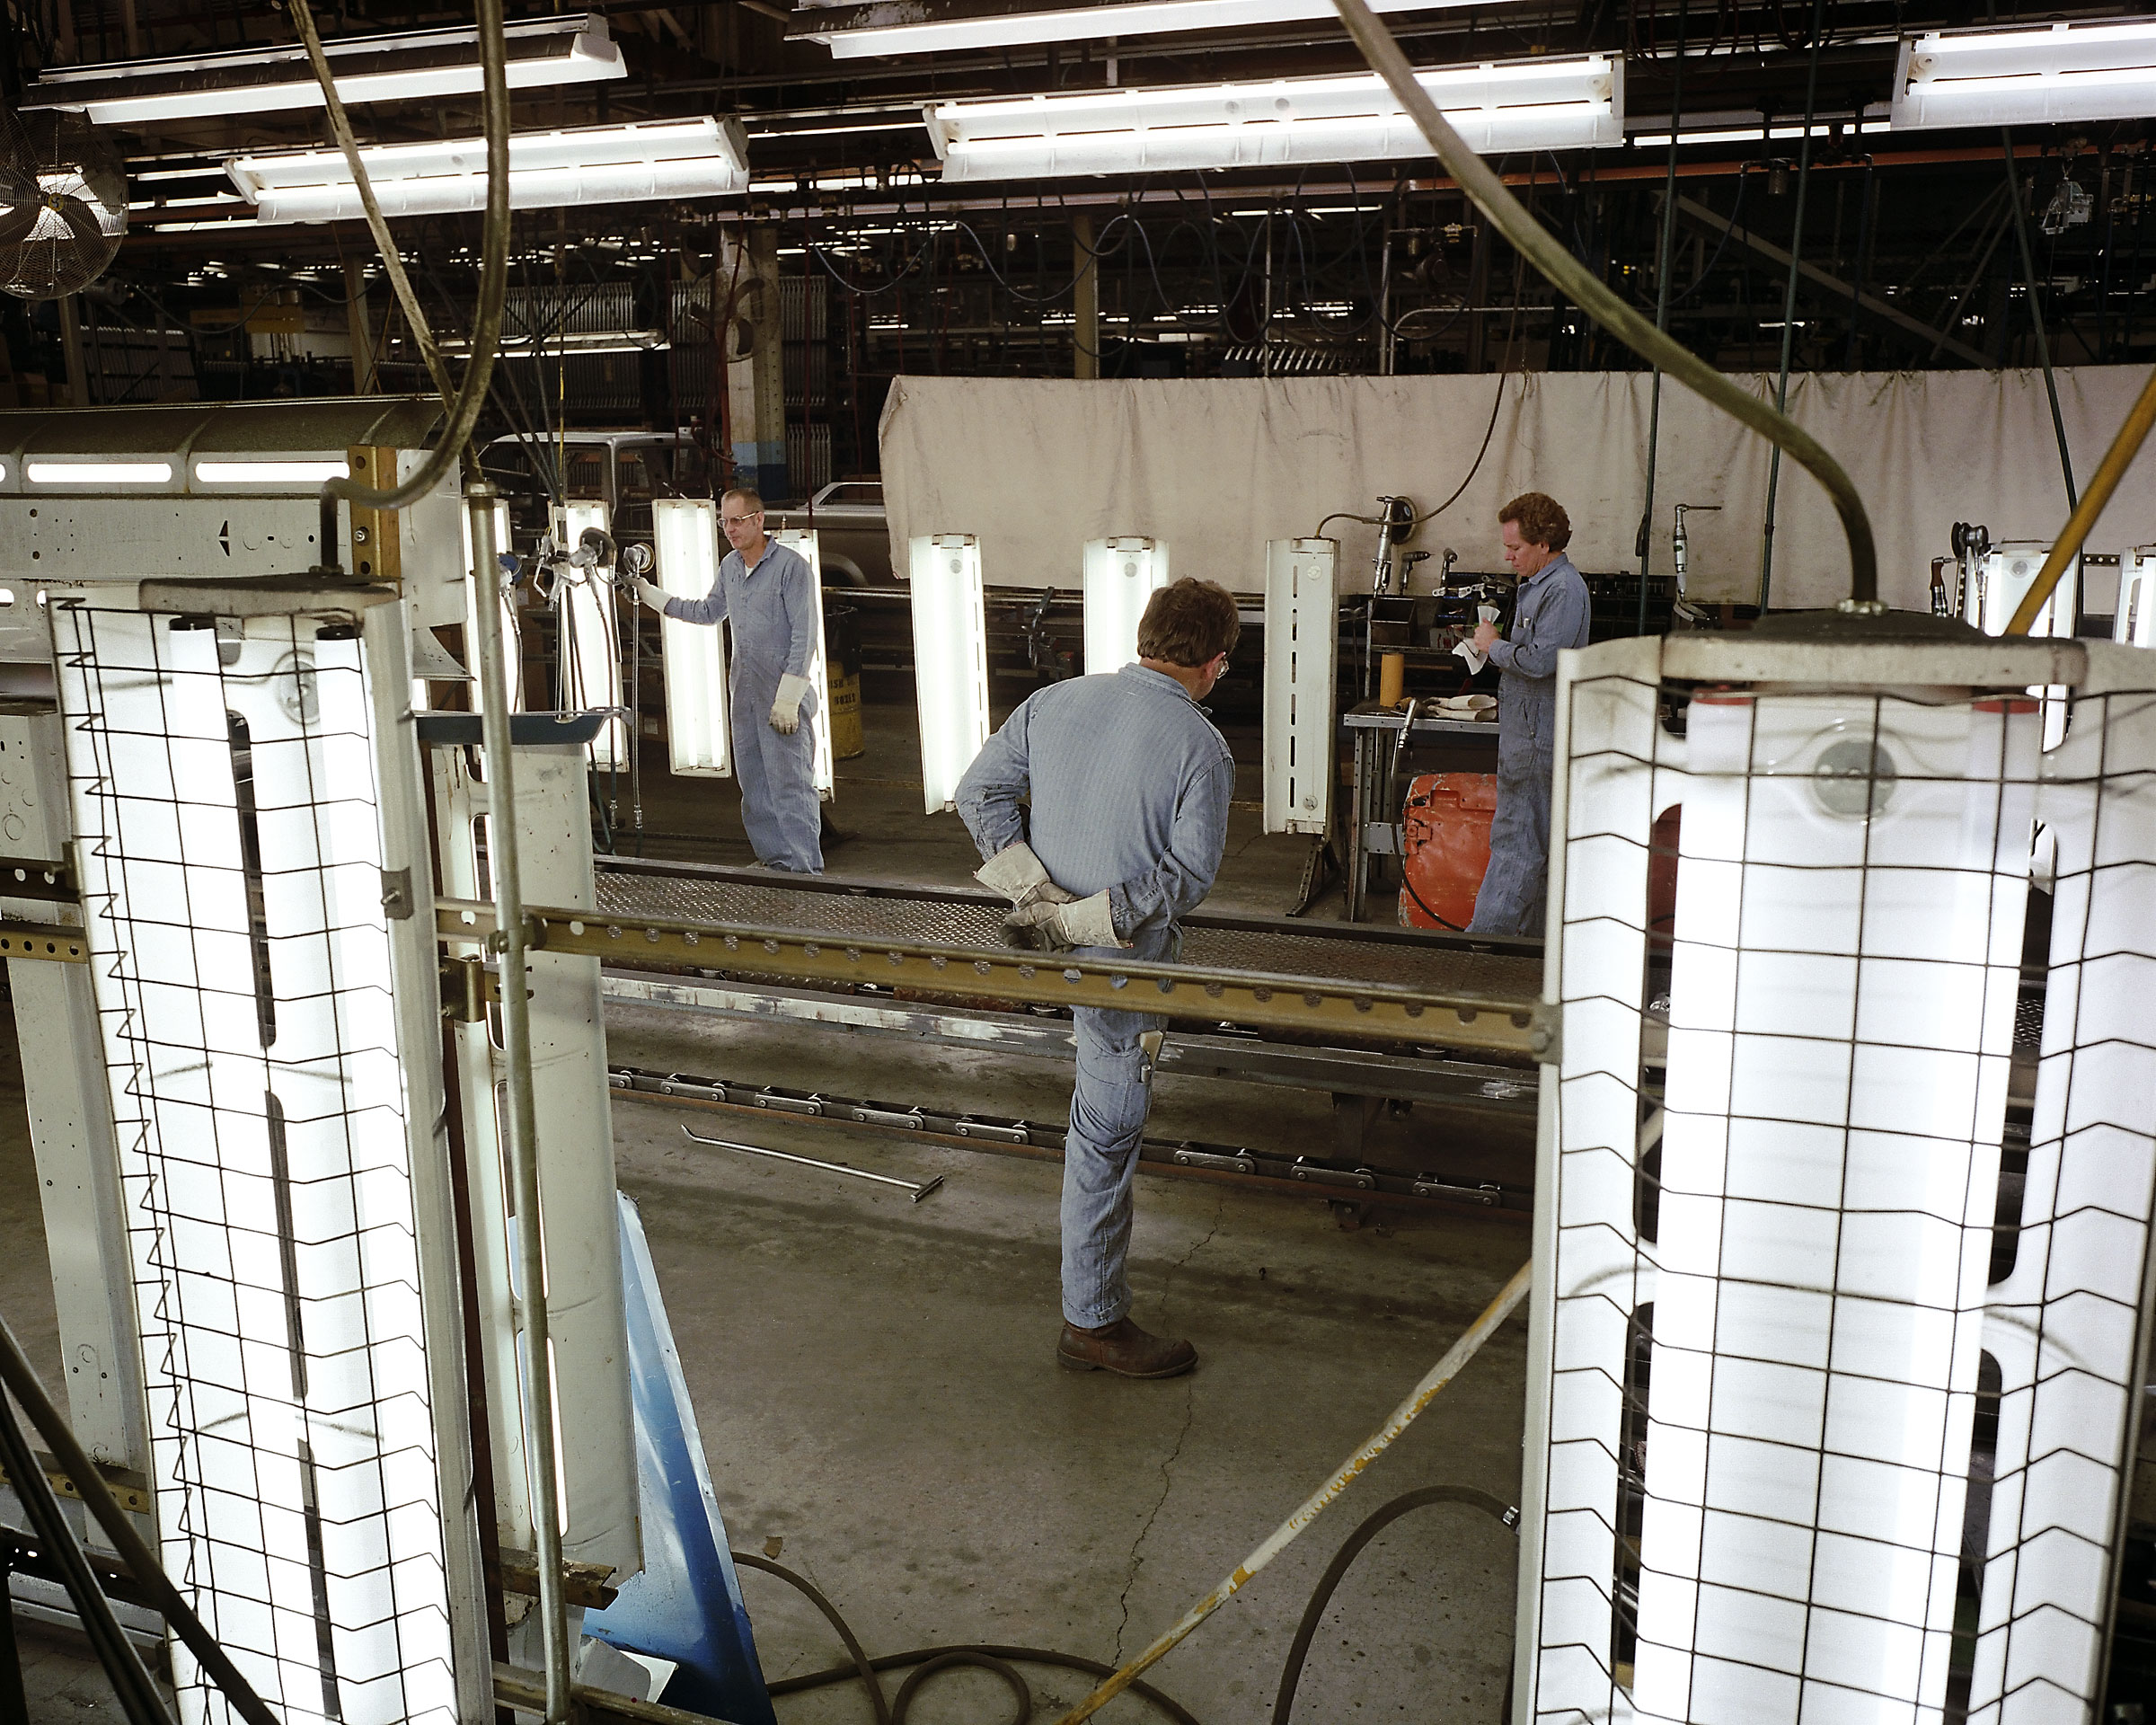 Ford Motor Co. (truck assembly), St. Paul, MN, 1986.